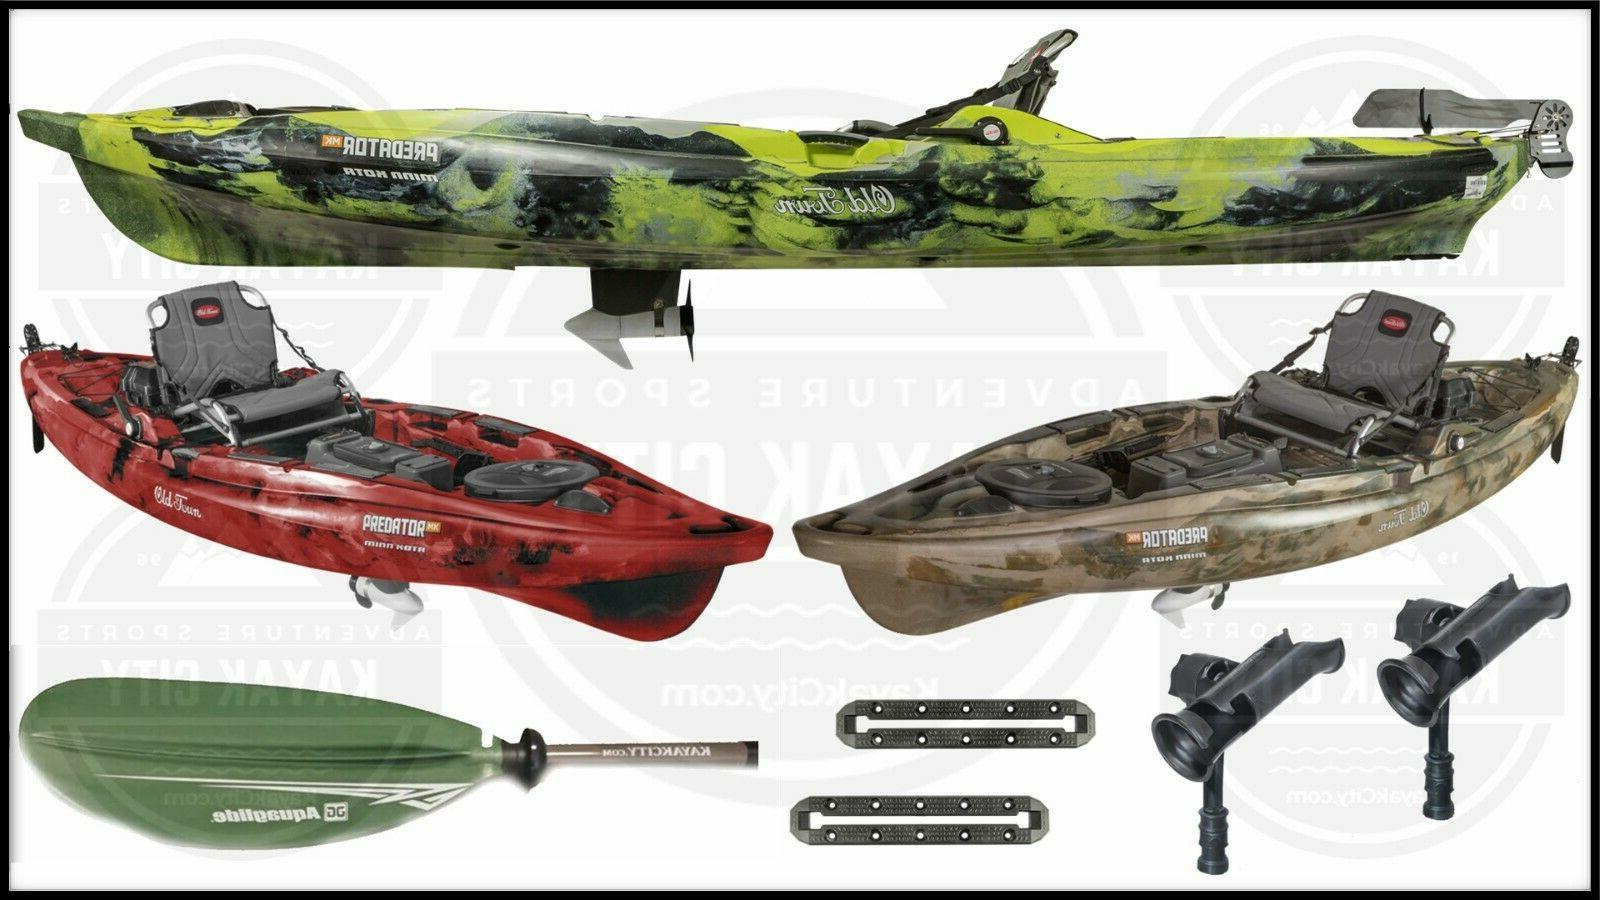 predator mk motorized kayak fishing package multiple